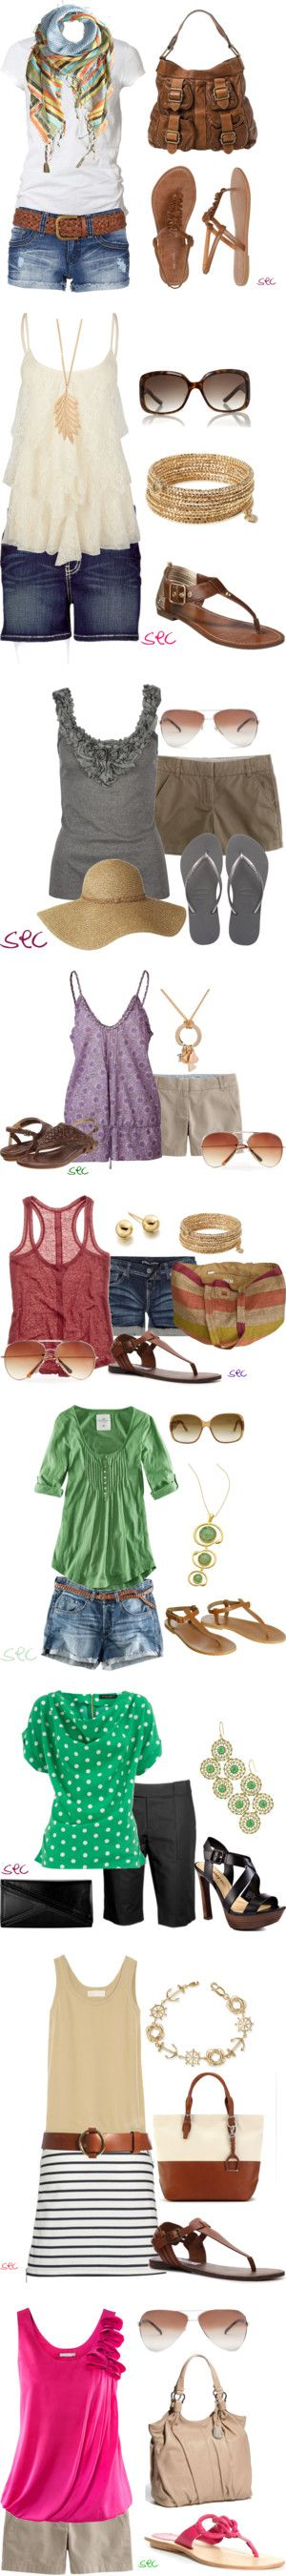 Cute, casual summer #outfit ideas from Polyvore user coombsie24!